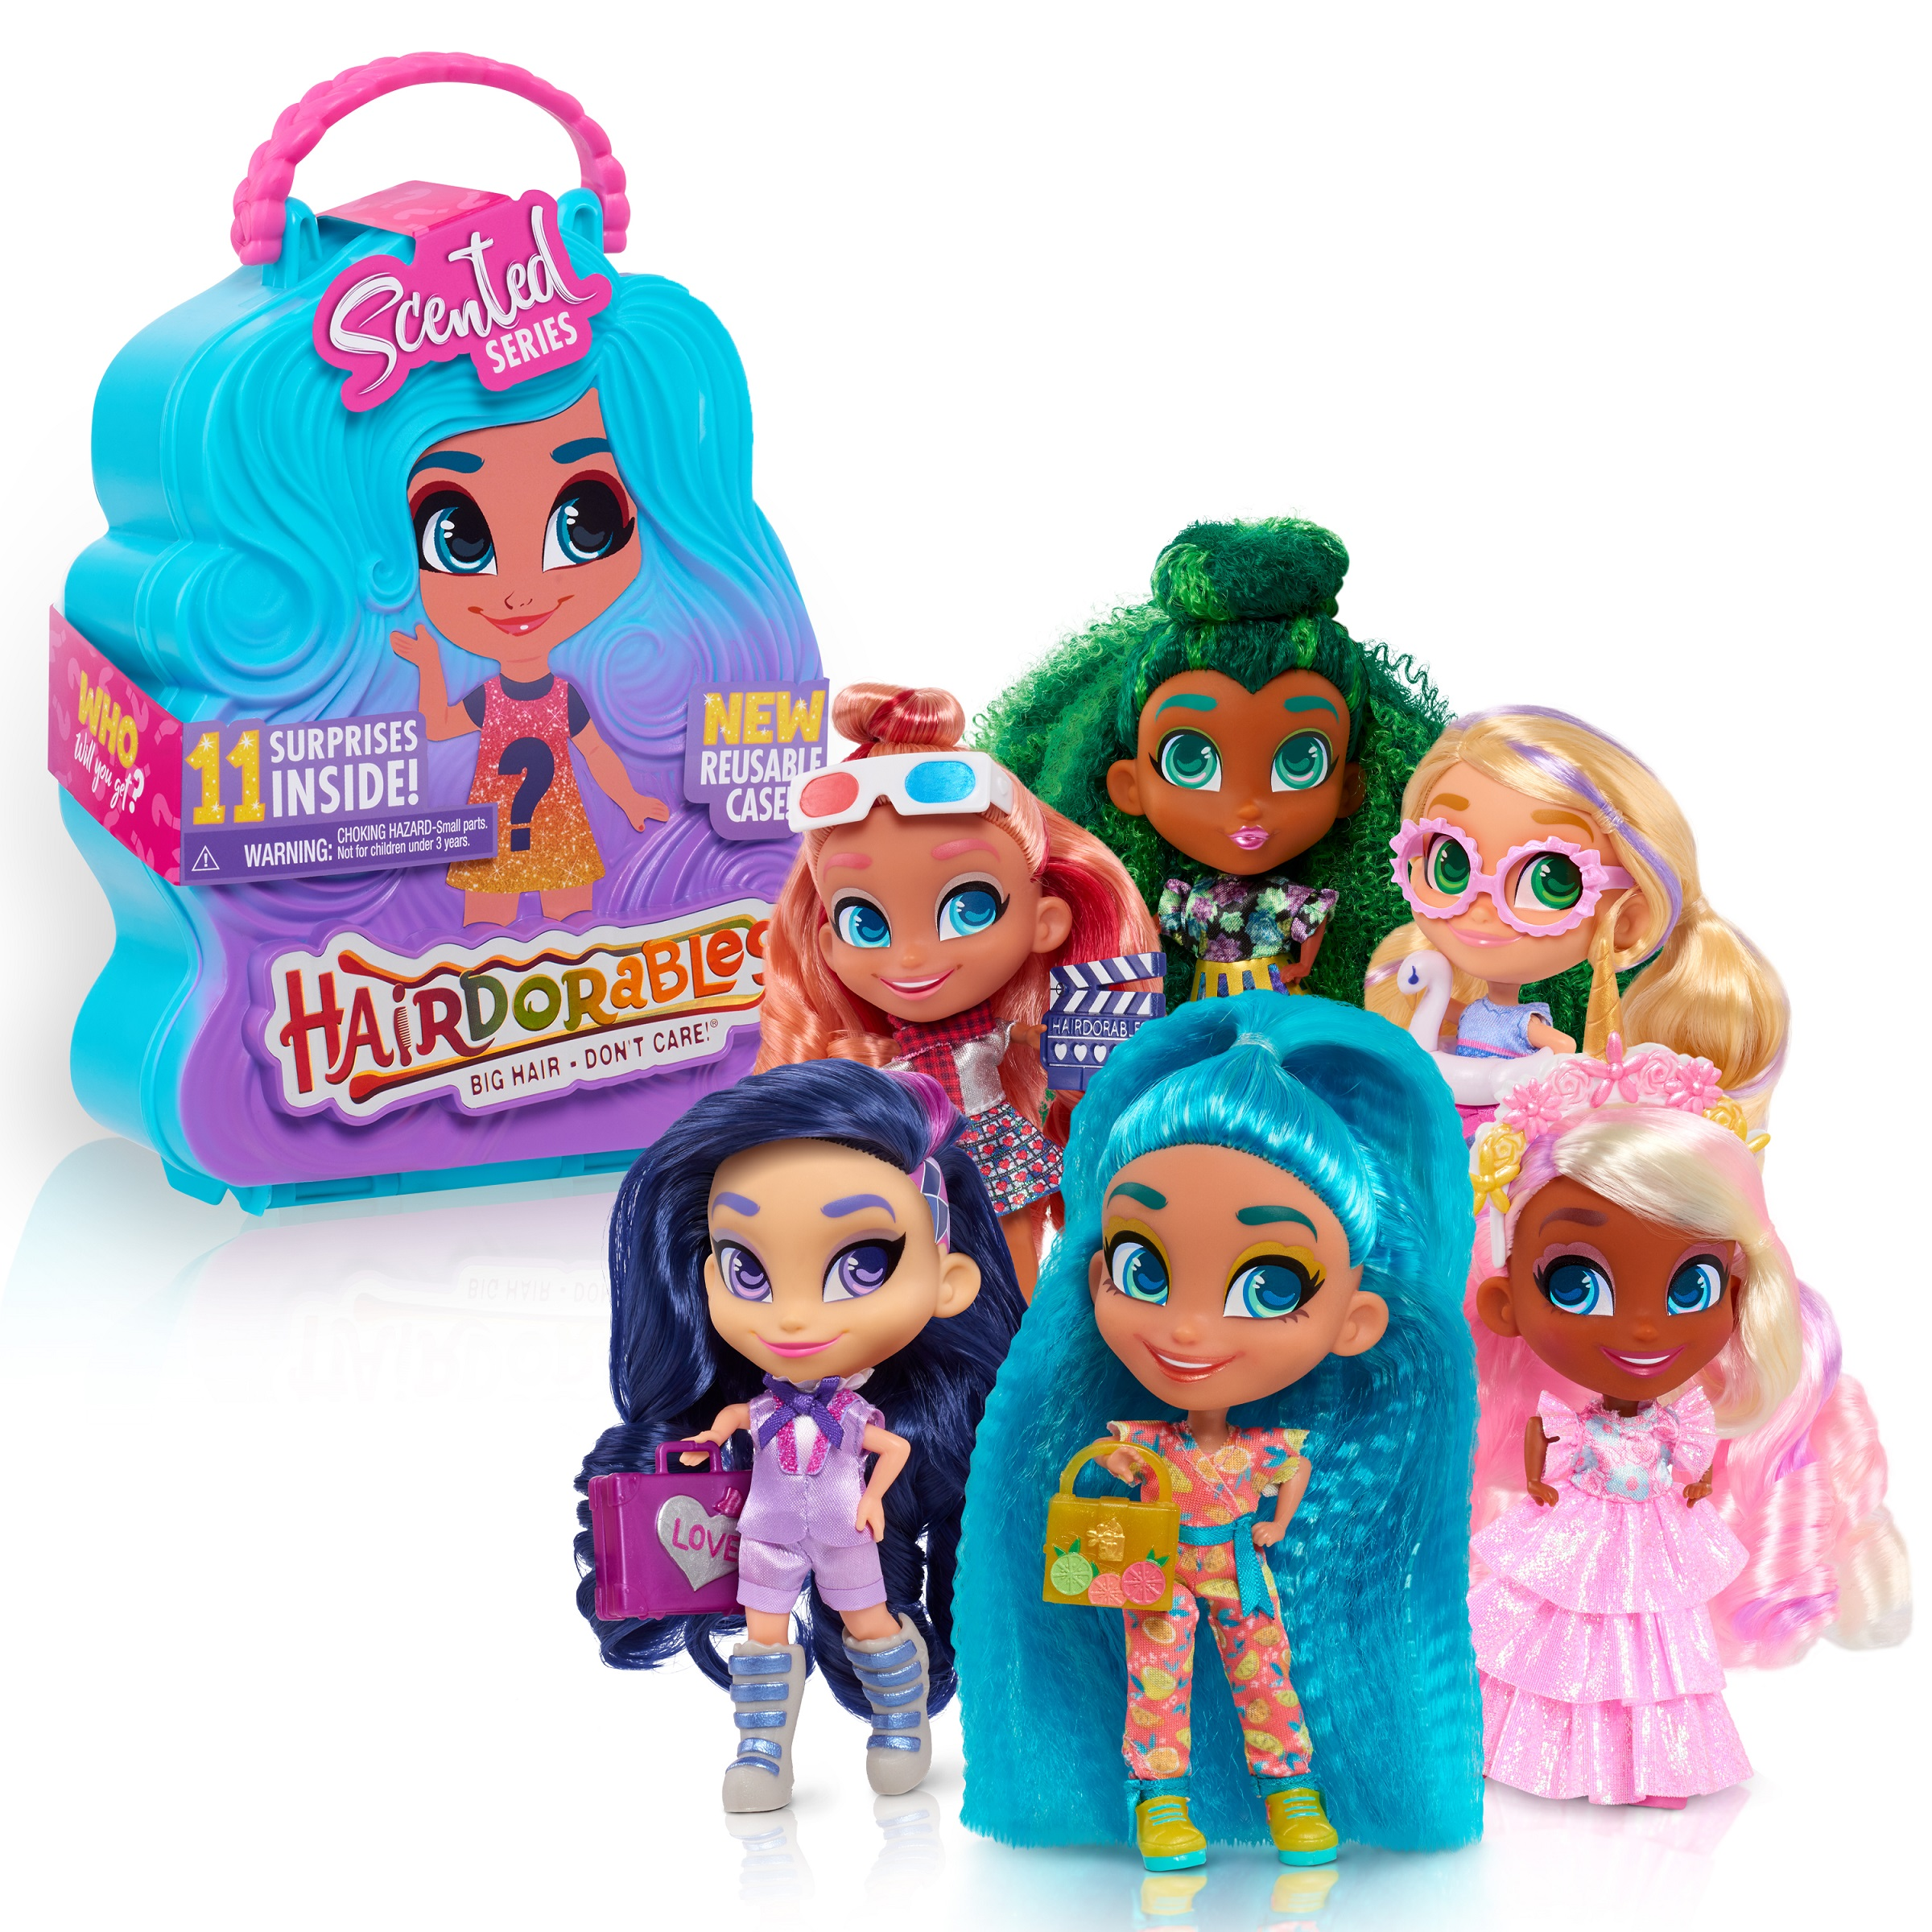 Hairdorables Scented Series 4